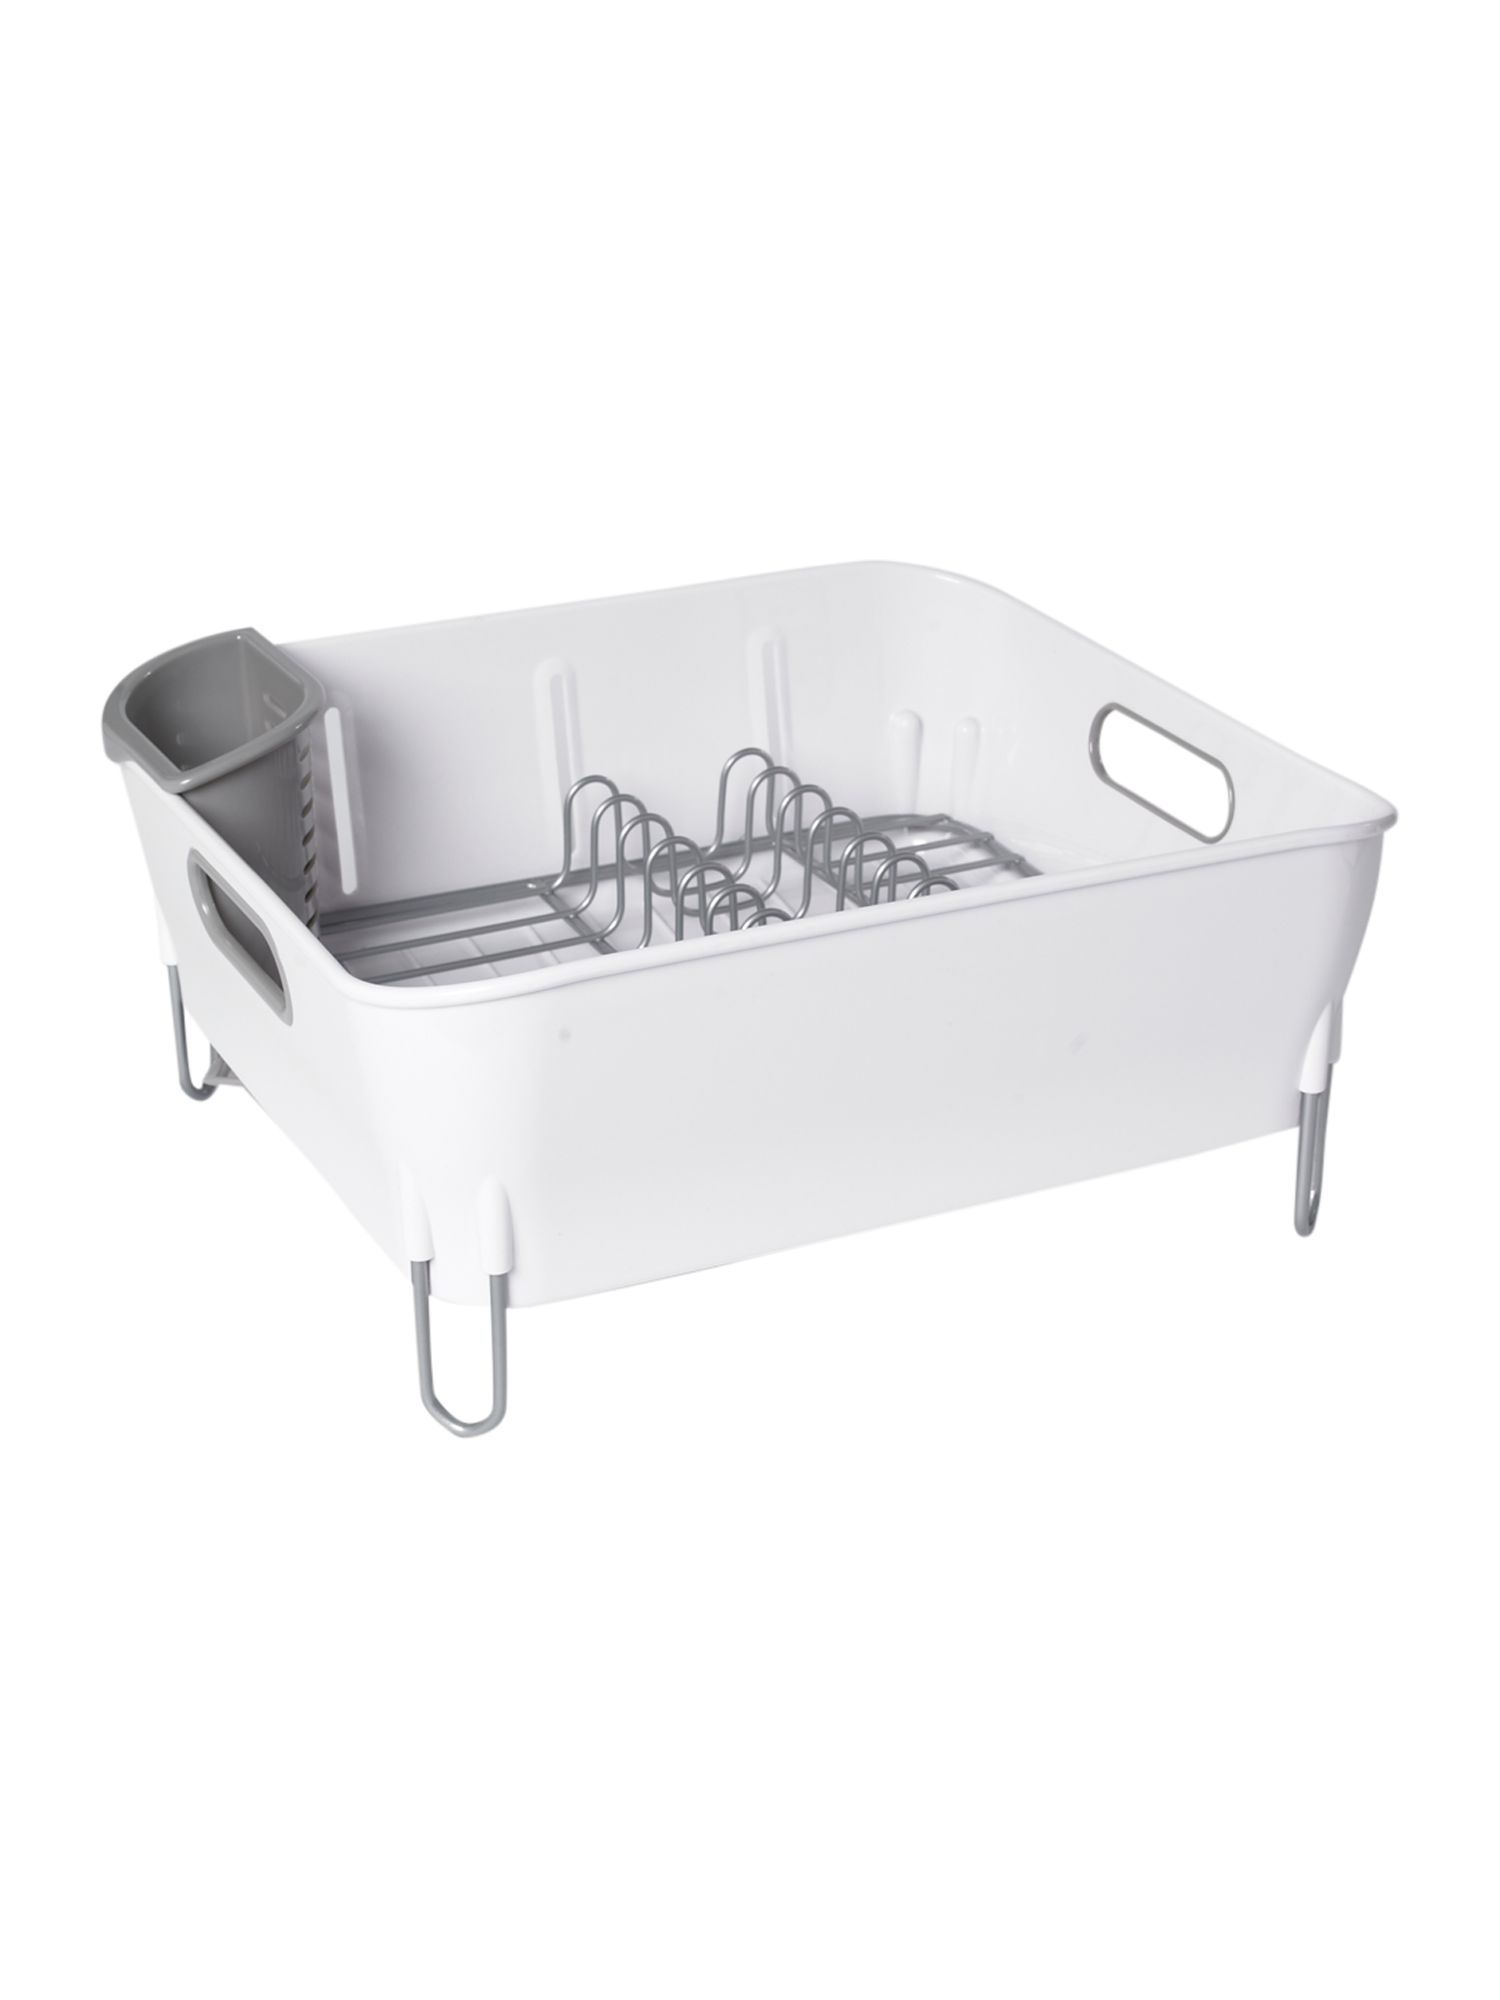 buy cheap in sink dish rack compare laundry cleaning. Black Bedroom Furniture Sets. Home Design Ideas